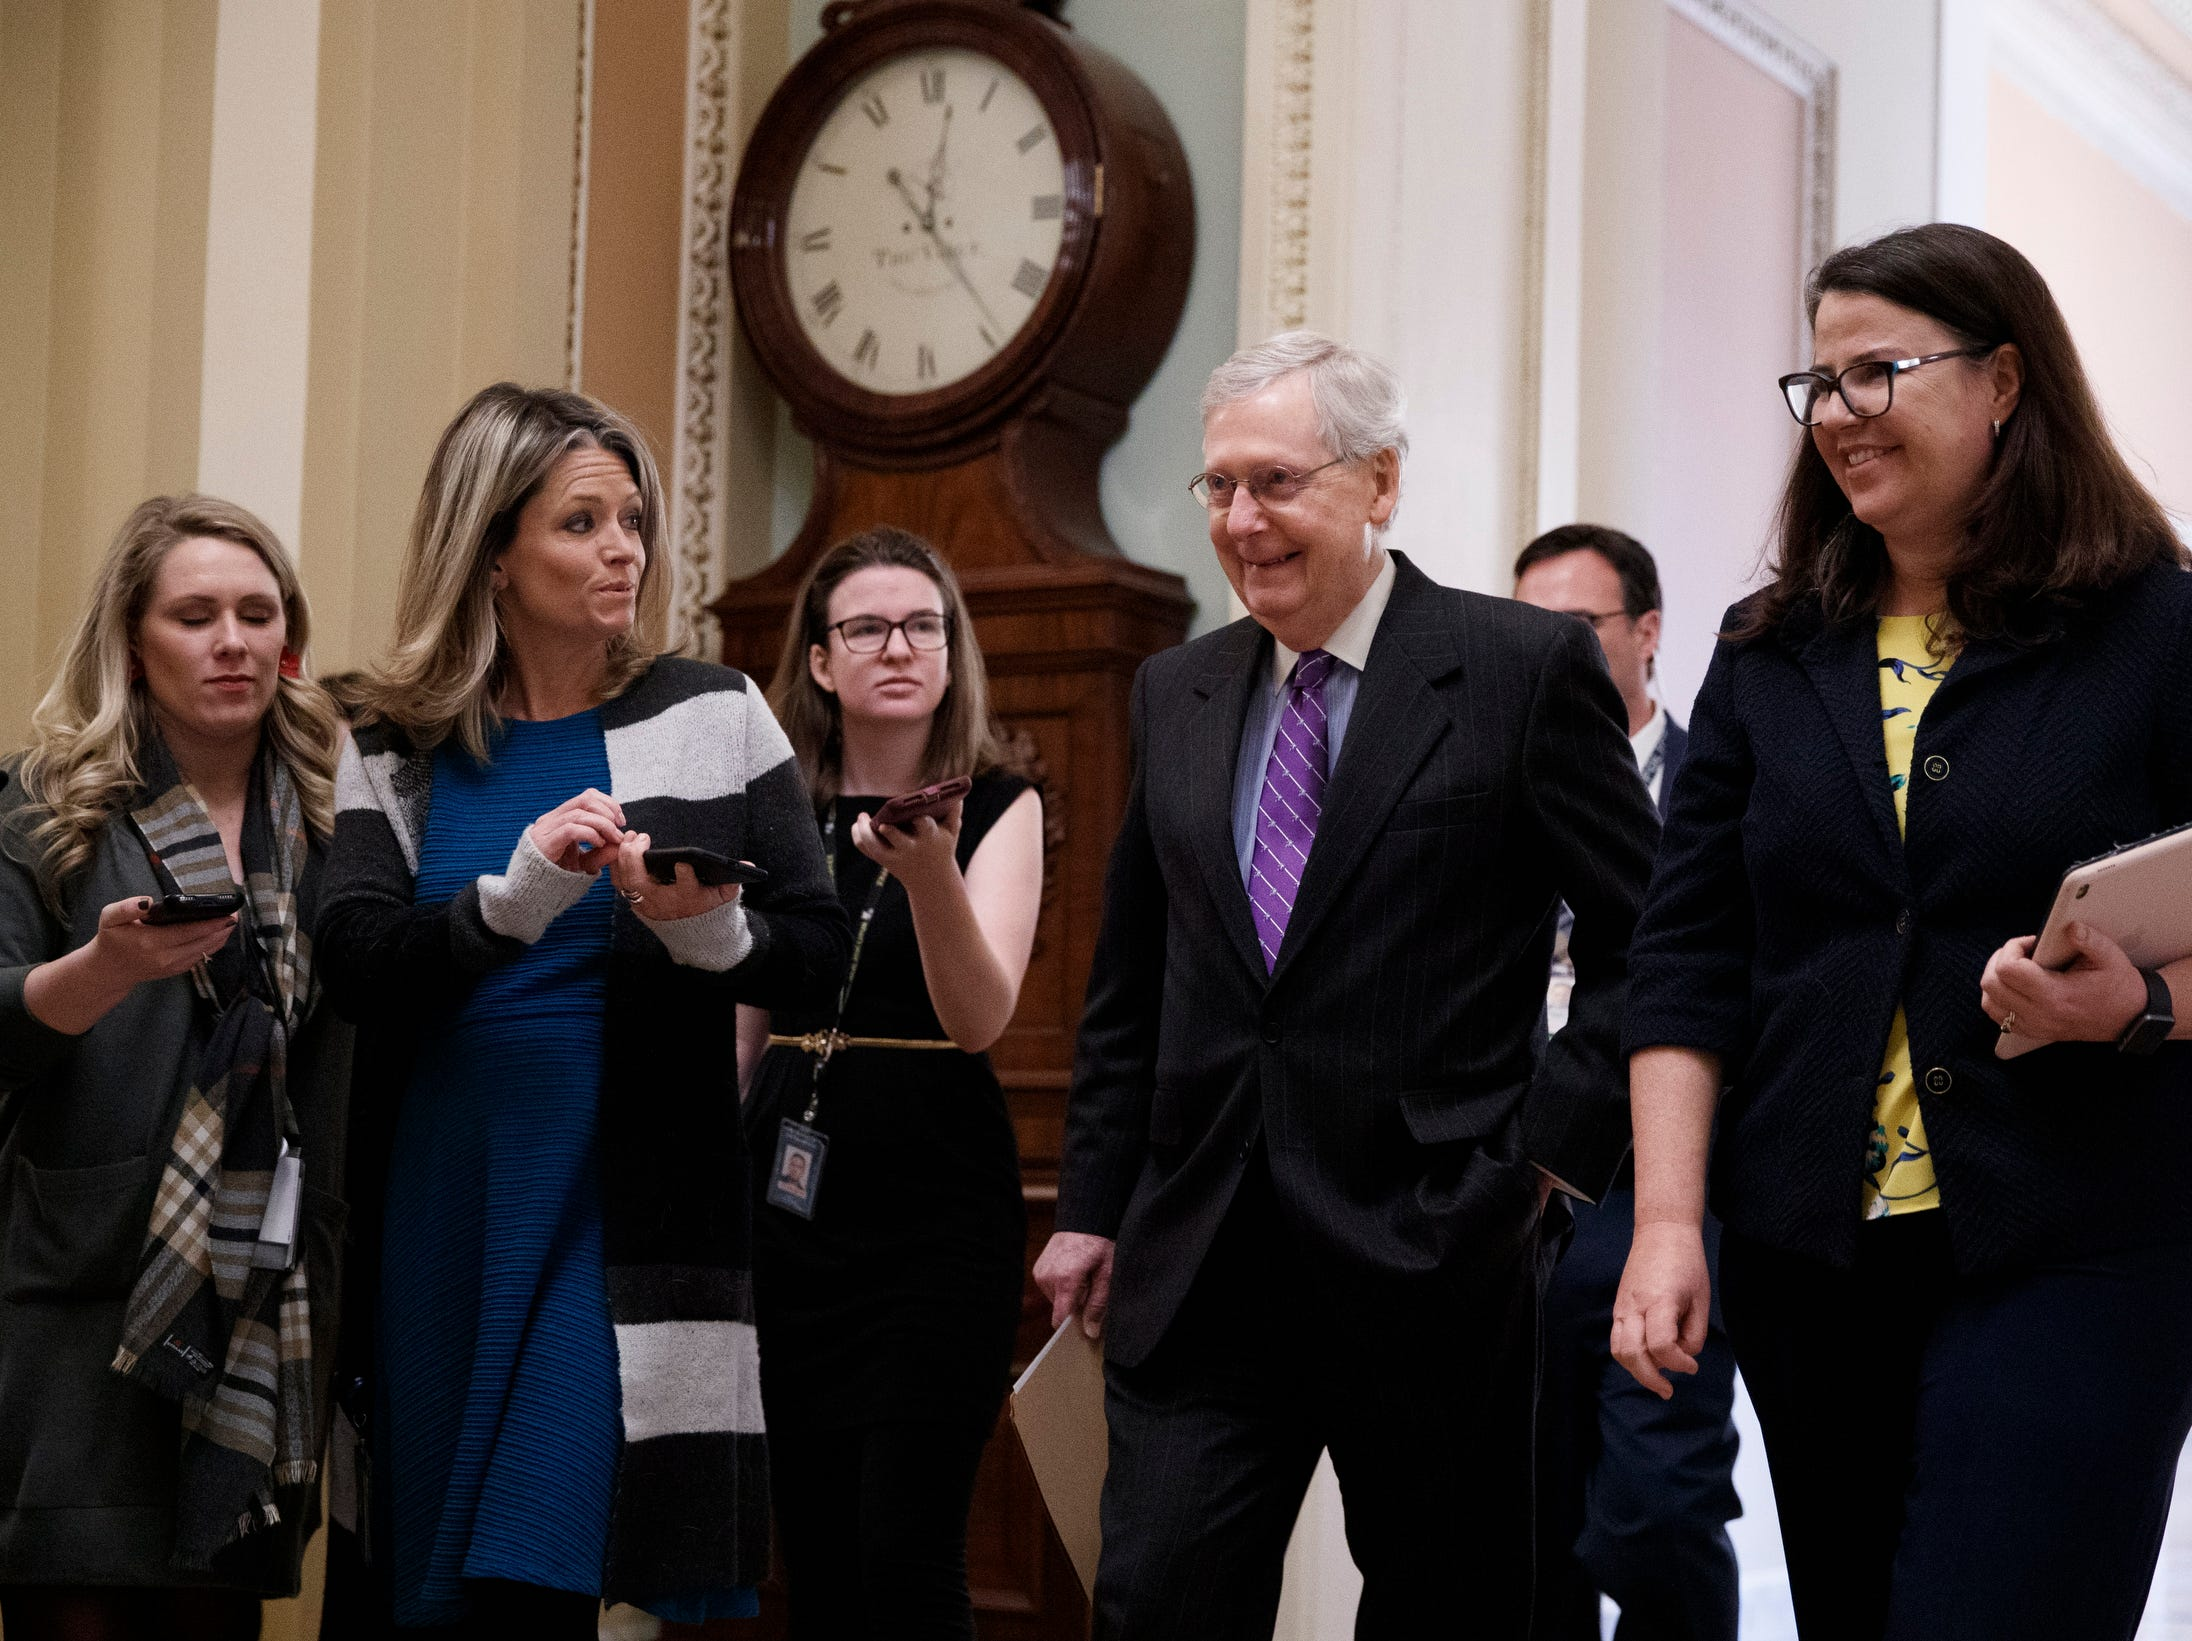 Senate Majority Leader Mitch McConnell (2-L) walks from his office to the Senate floor to deliver remarks in the US Capitol Capitol, Wednesday. The partial US government shutdown continues into its 33rd day as competing bills are being considered in the Senate.